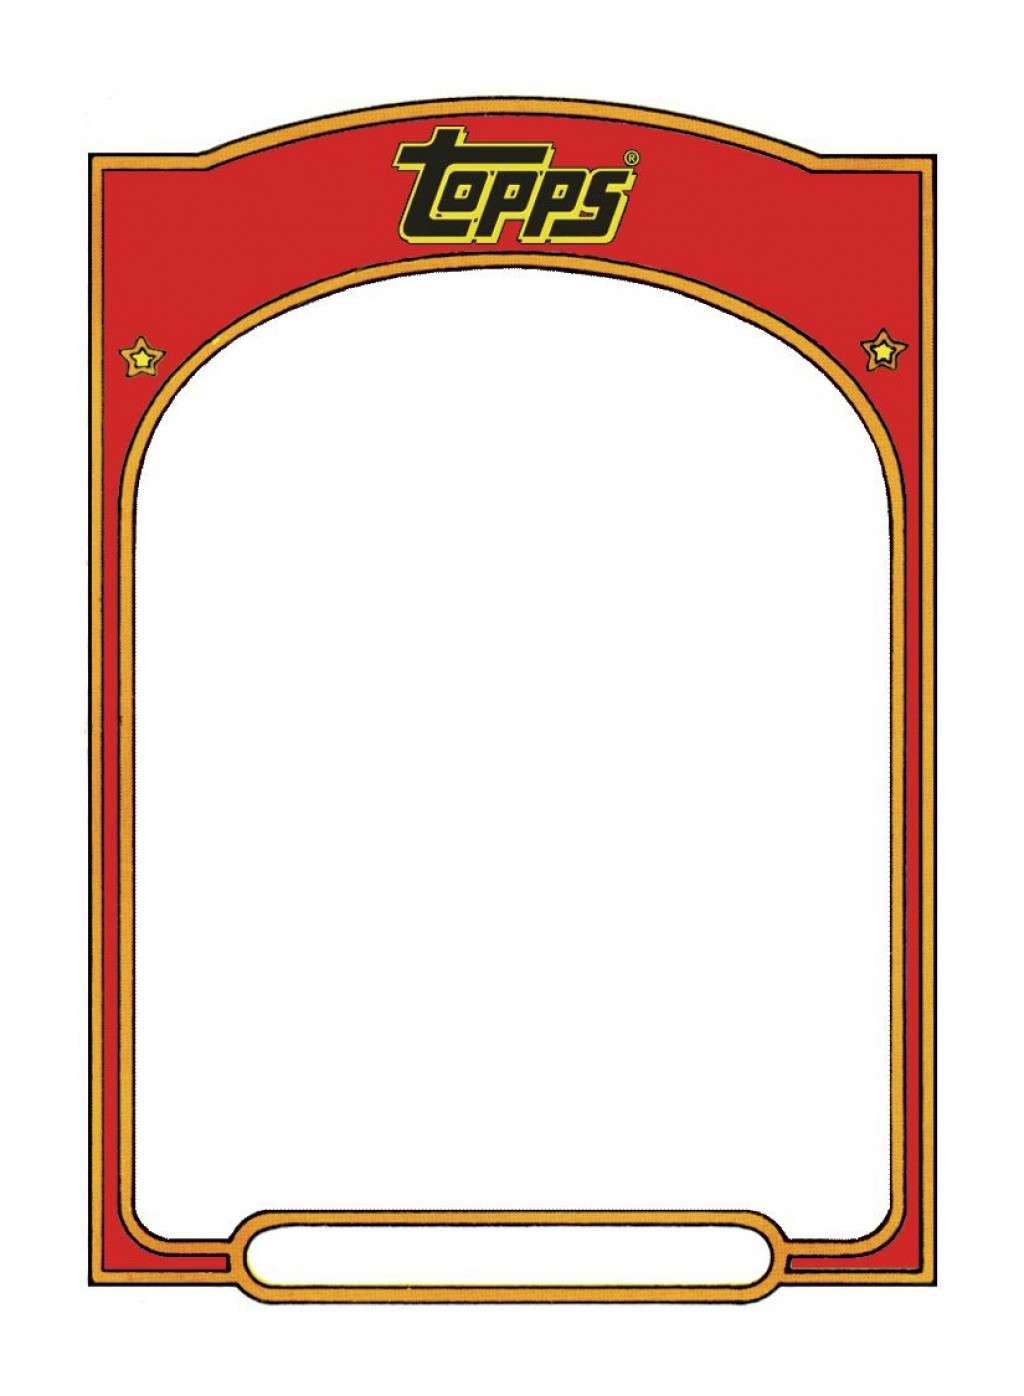 002 Unforgettable Baseball Card Template Word Highest Clarity  Lineup Microsoft FreeLarge